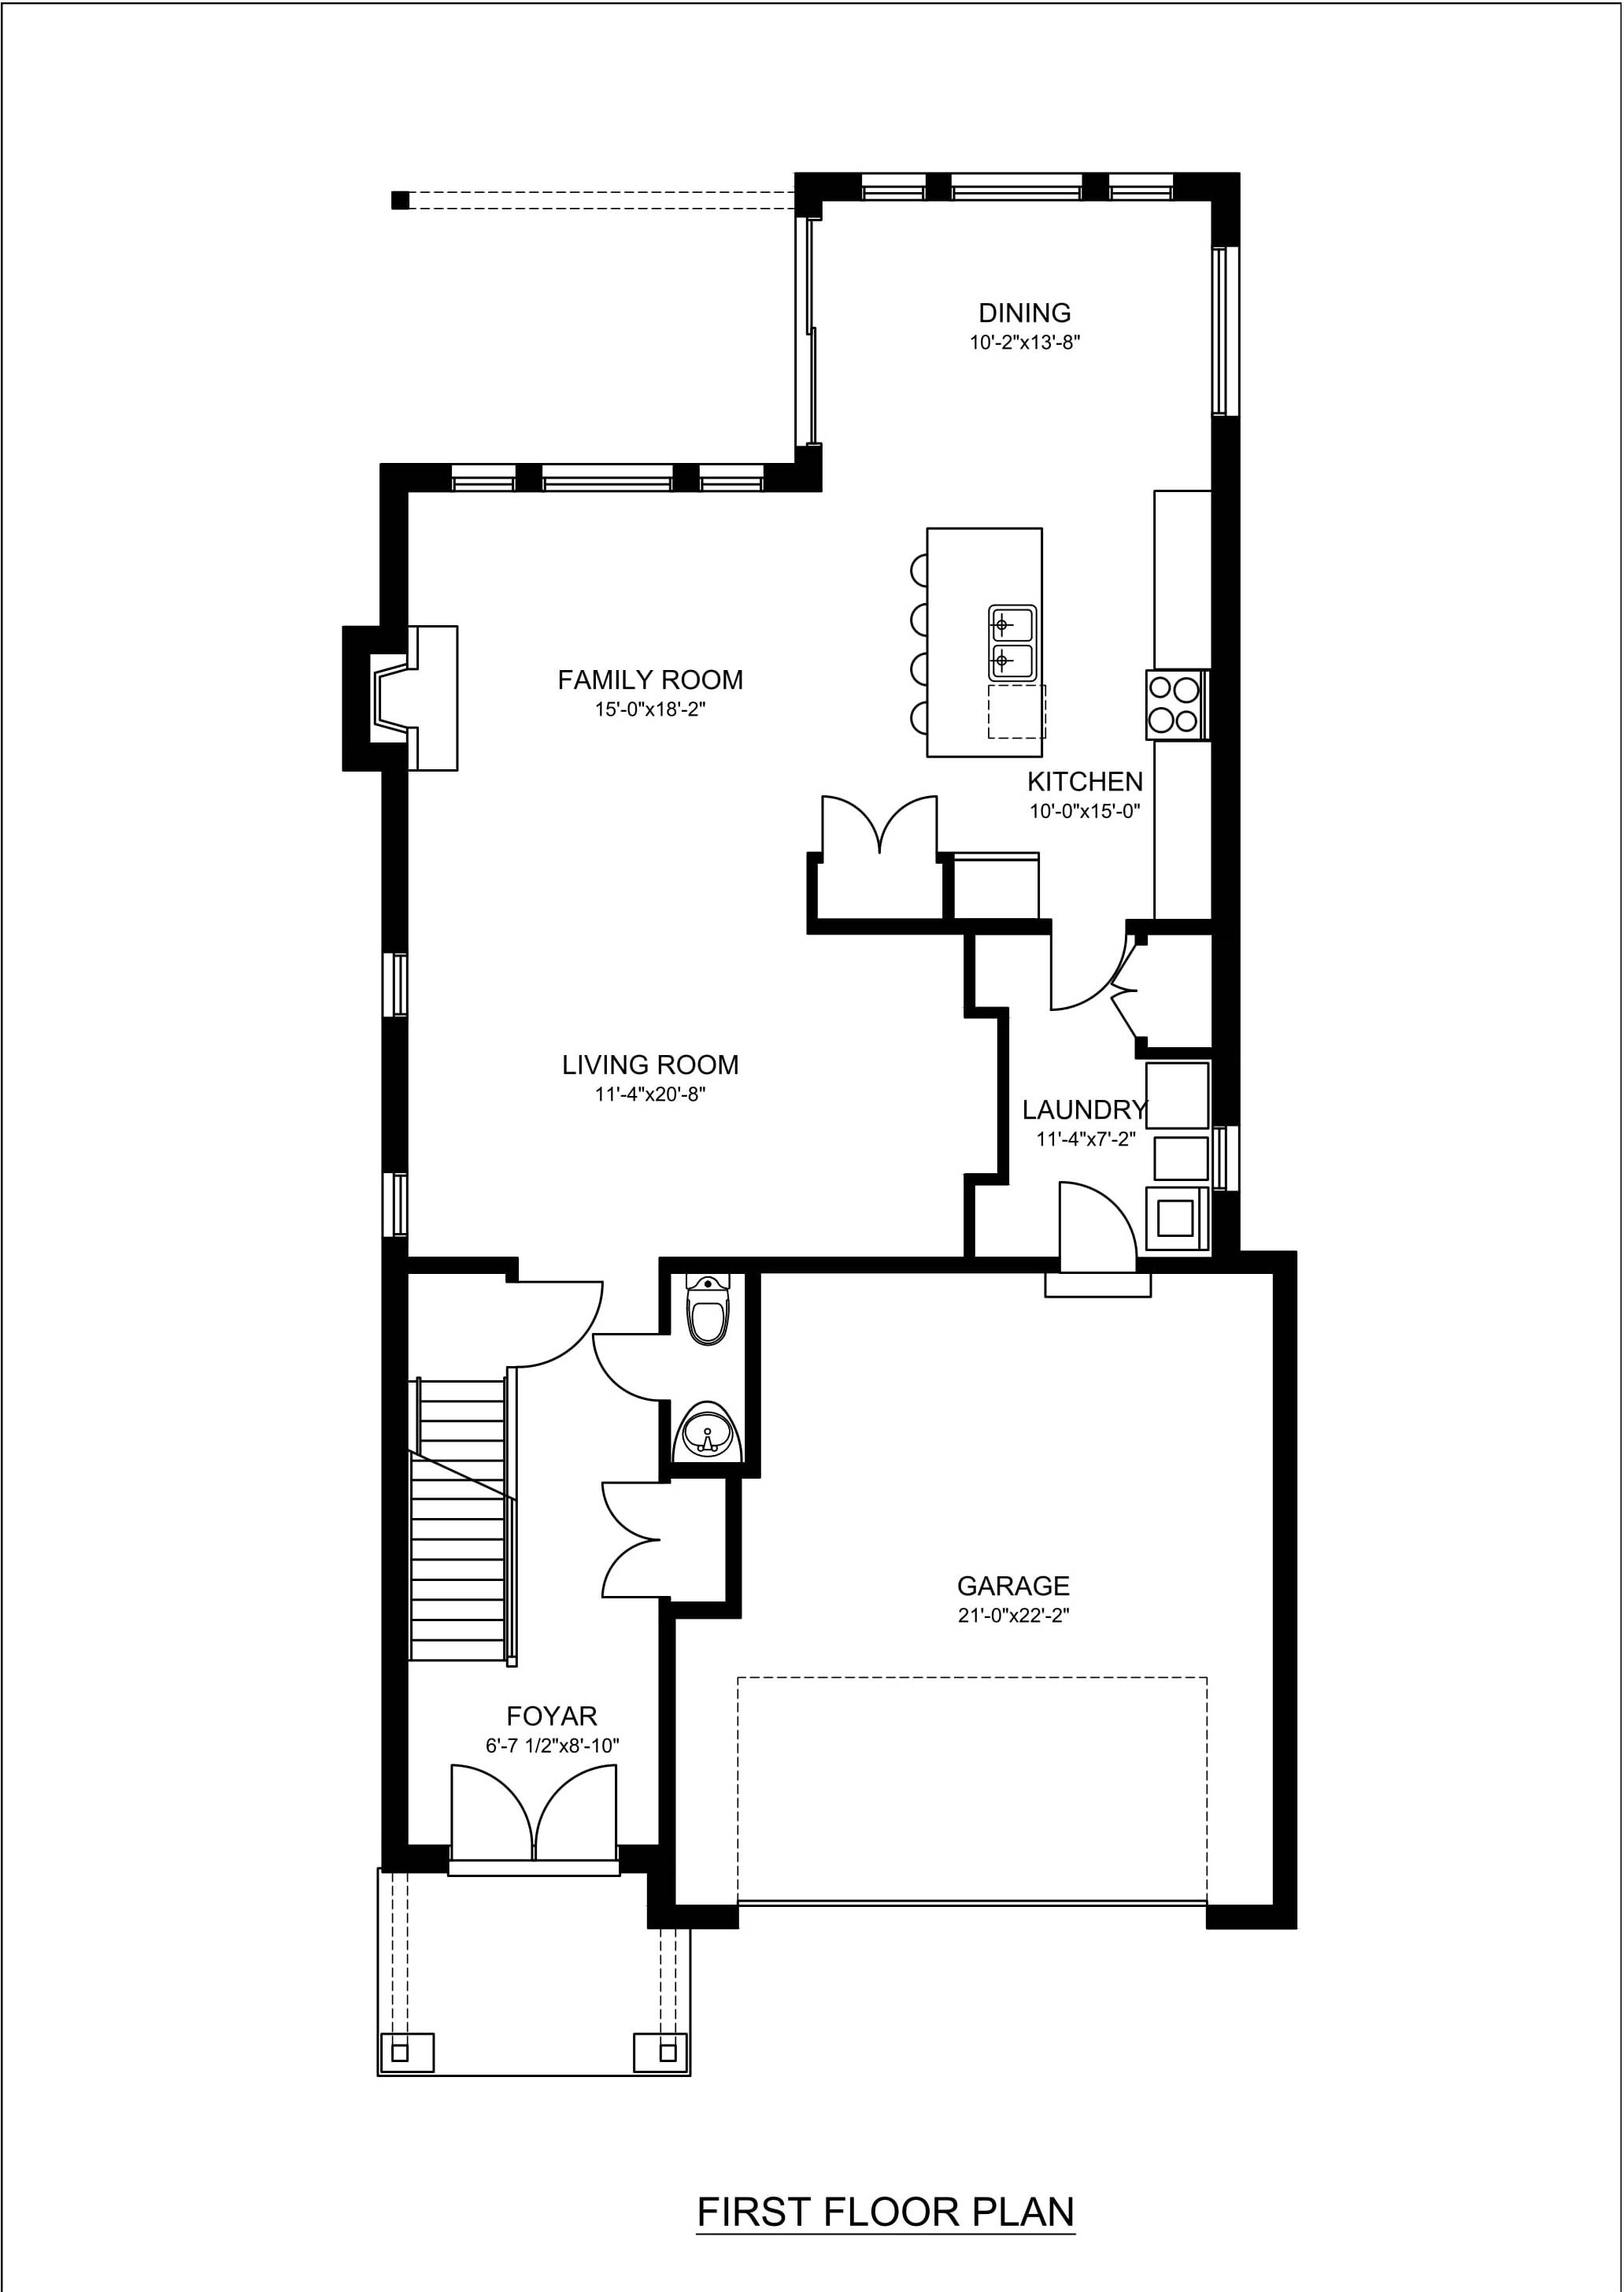 Real estate 2d floor plans design rendering samples for Customize floor plans